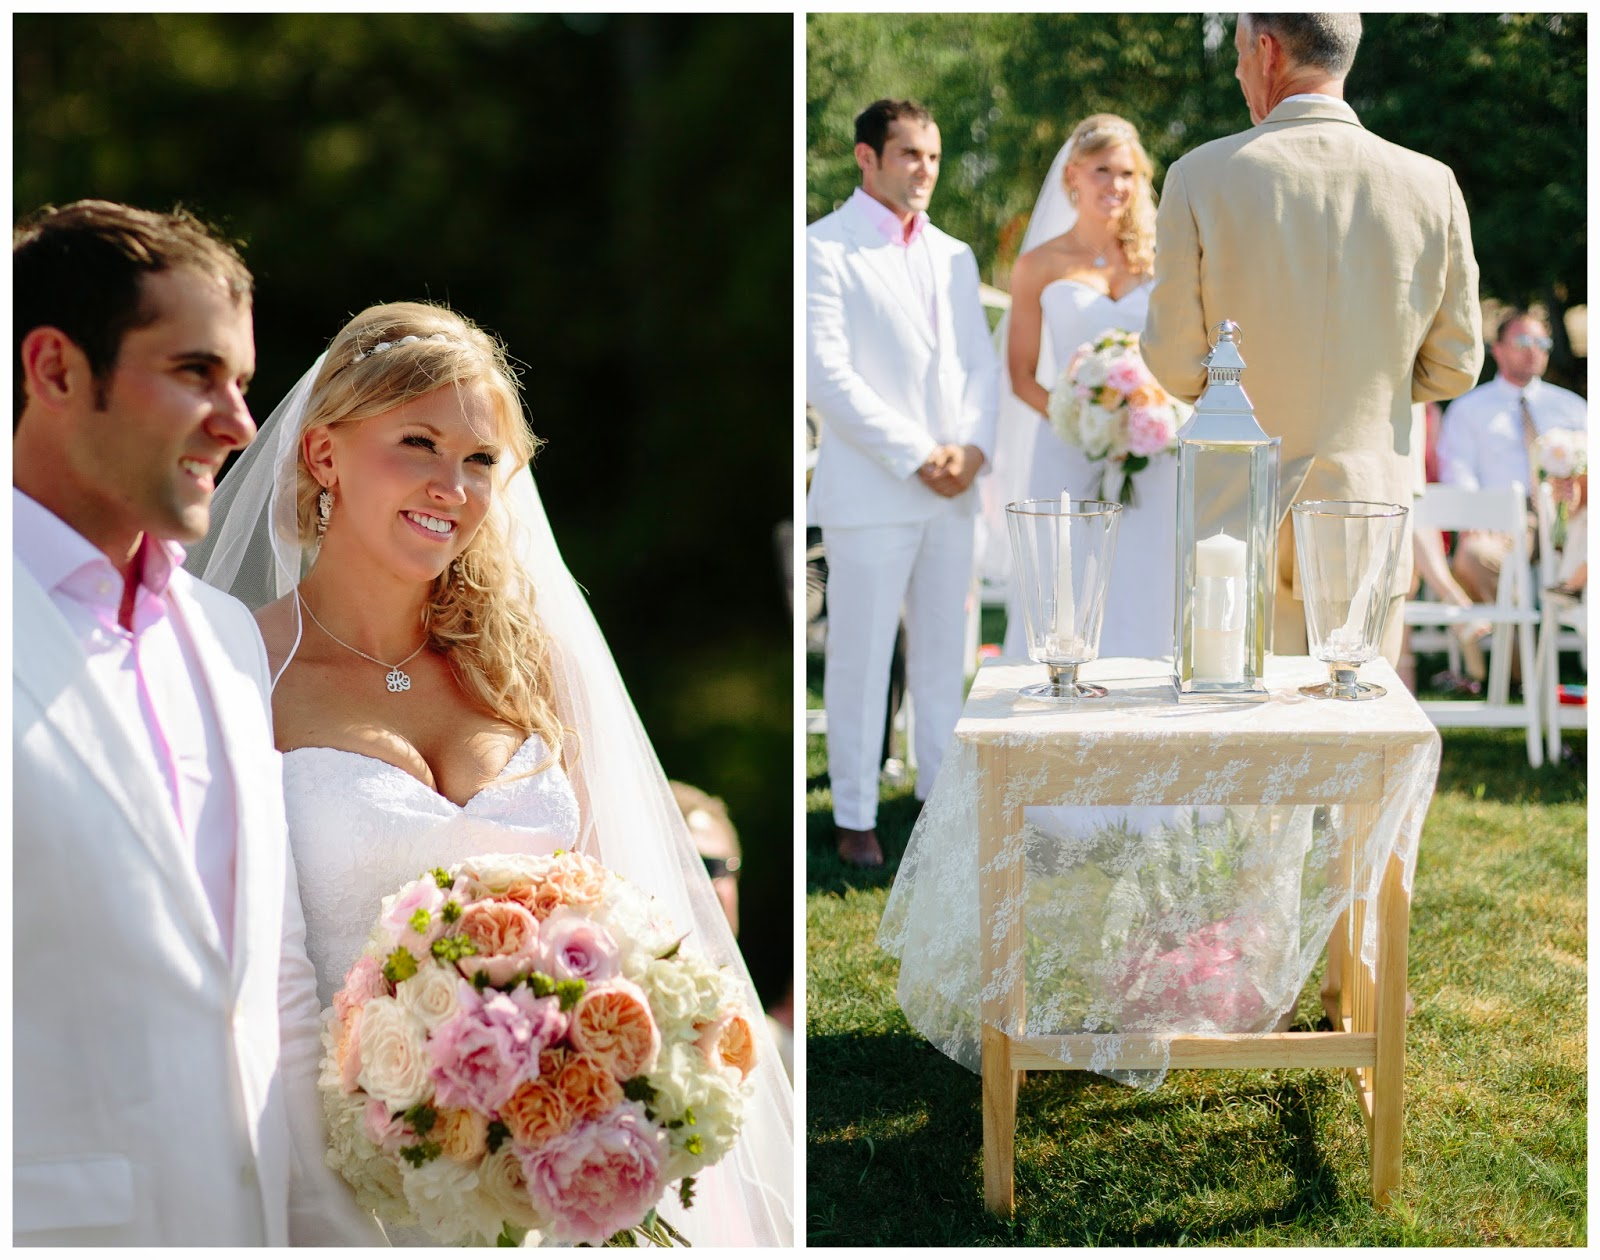 Brides Dress Sottero and Badgely Shoes Kenneth Cole  sc 1 st  Andrea Naylor Photography & Andrea Naylor Photography: Megan and Brianu0027s Door County Lakeside ...